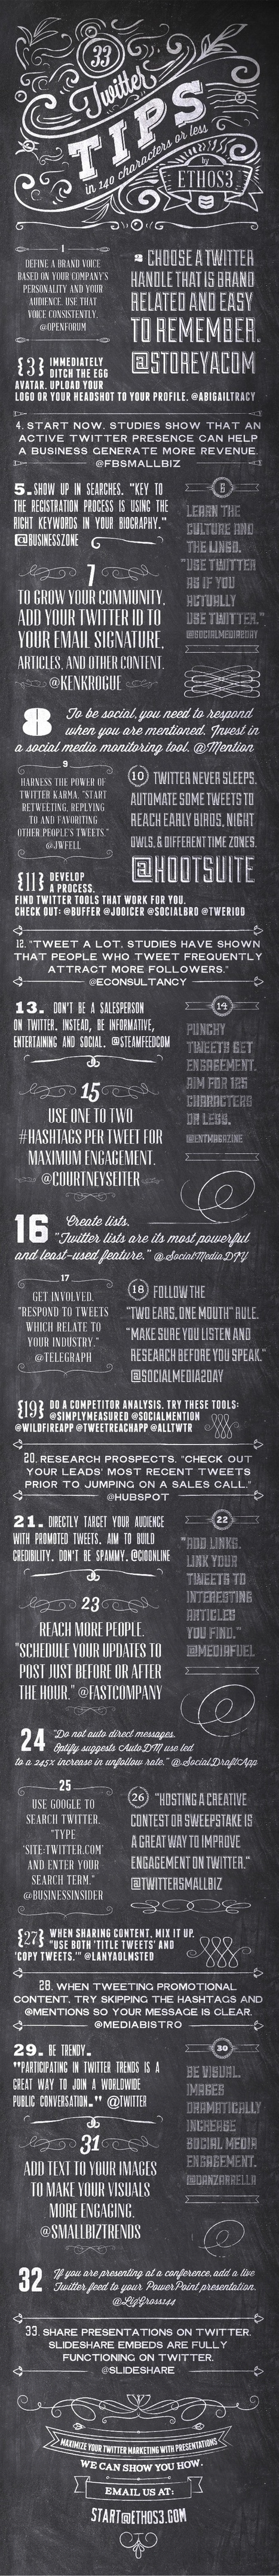 33 Twitter Tips, in 140 characters or less | Digital Matters | Scoop.it